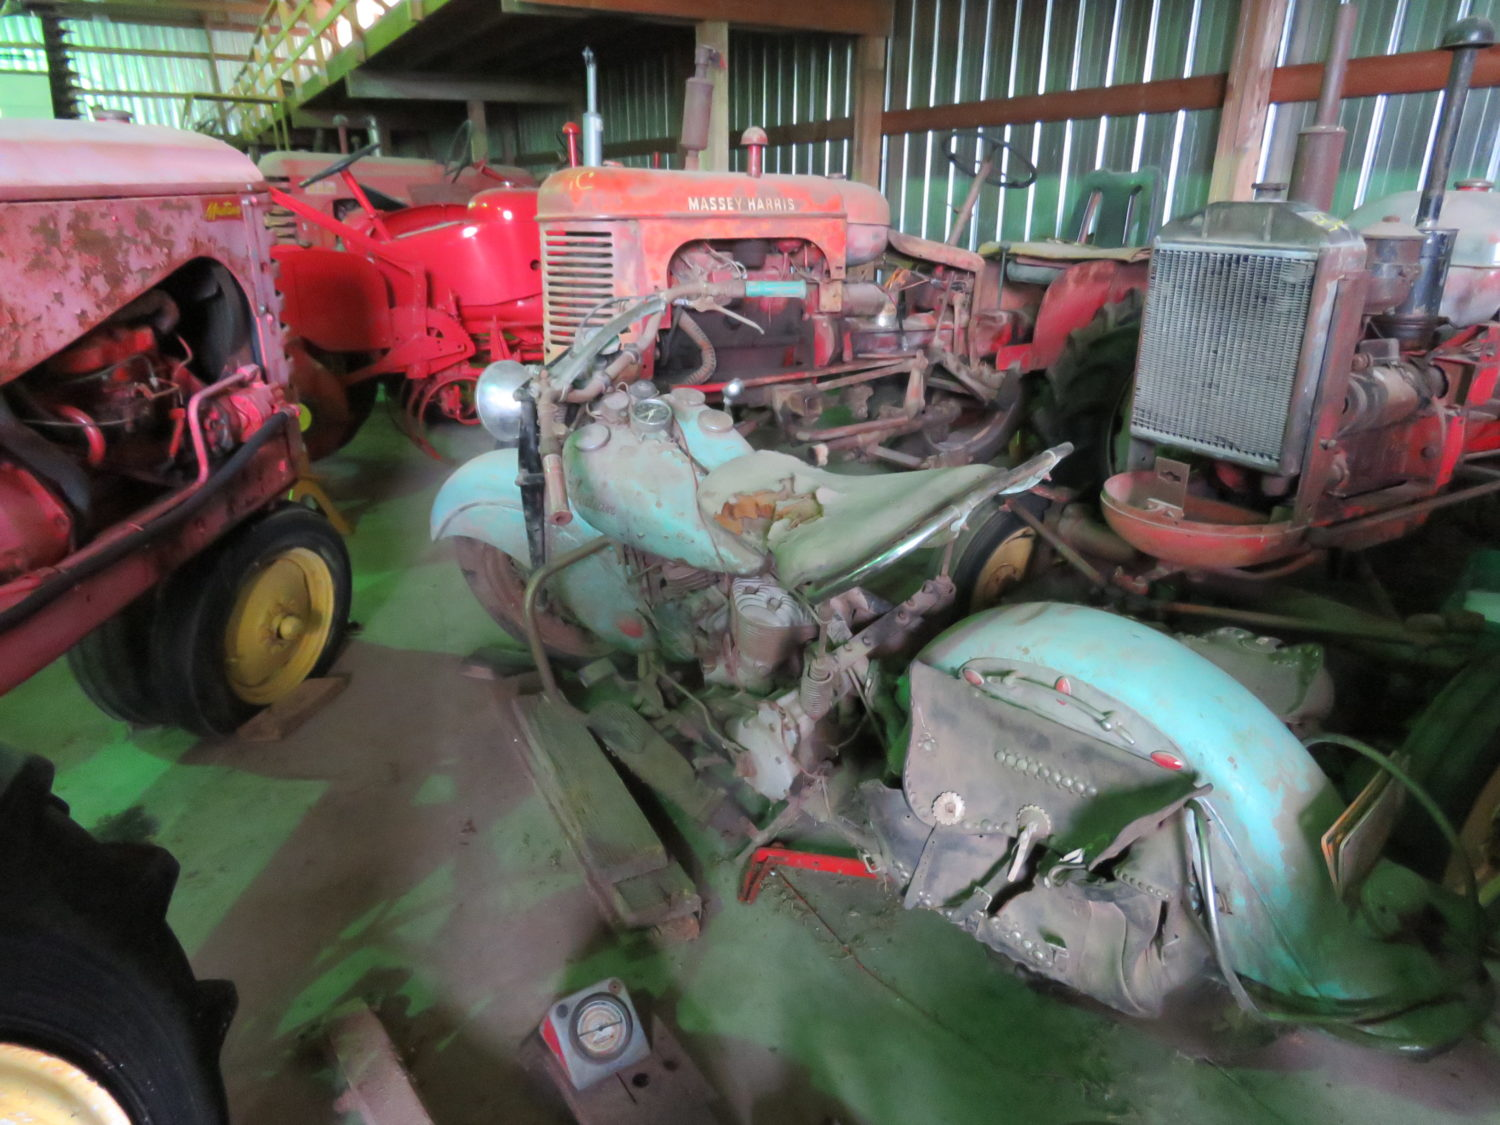 Day 1-Collector Cars, Vintage Motorcycles & Antique Tractors- The Meacham Estate - image 1